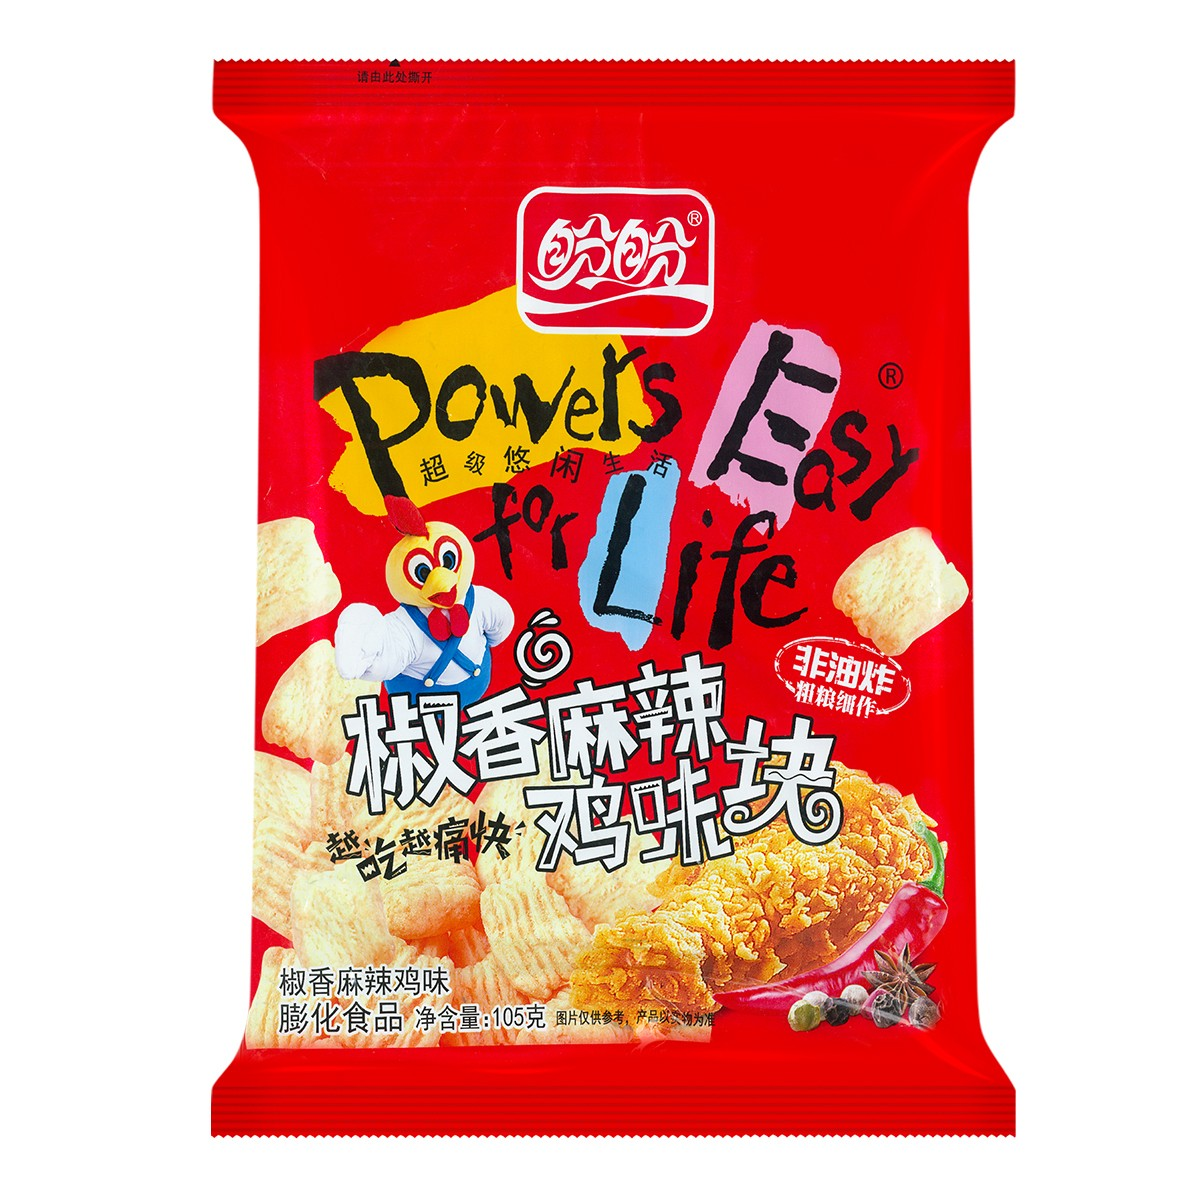 PANPAN Wheat Crunch Sichuan Pepper Flavor 150g